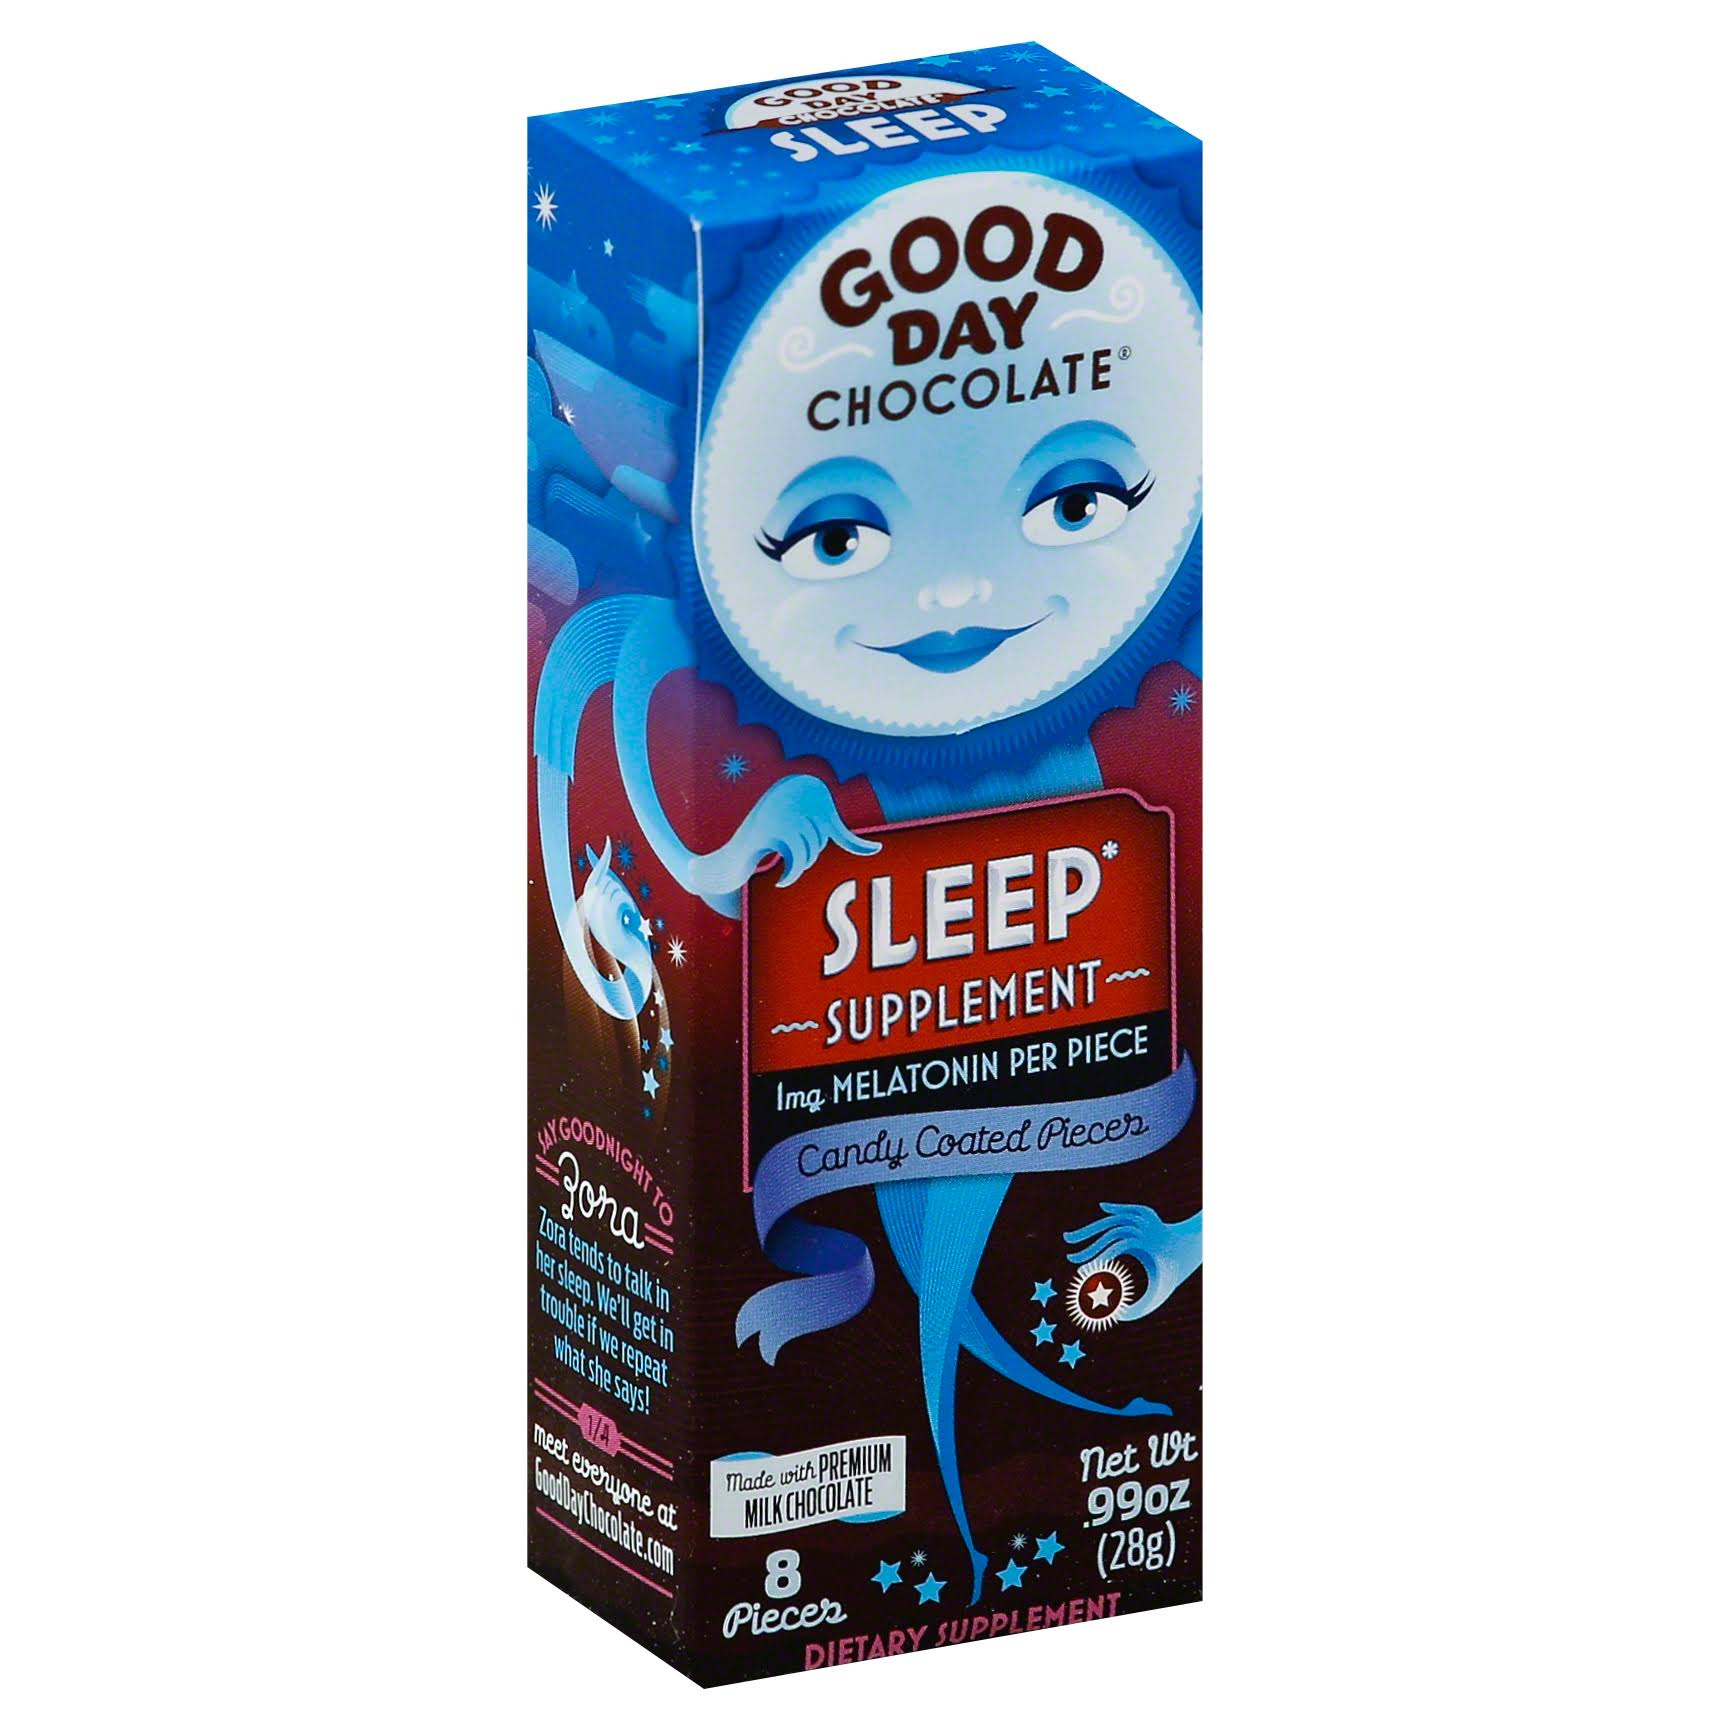 Good Day Chocolate Candy Coated Melatonin - Sleep, 8ct